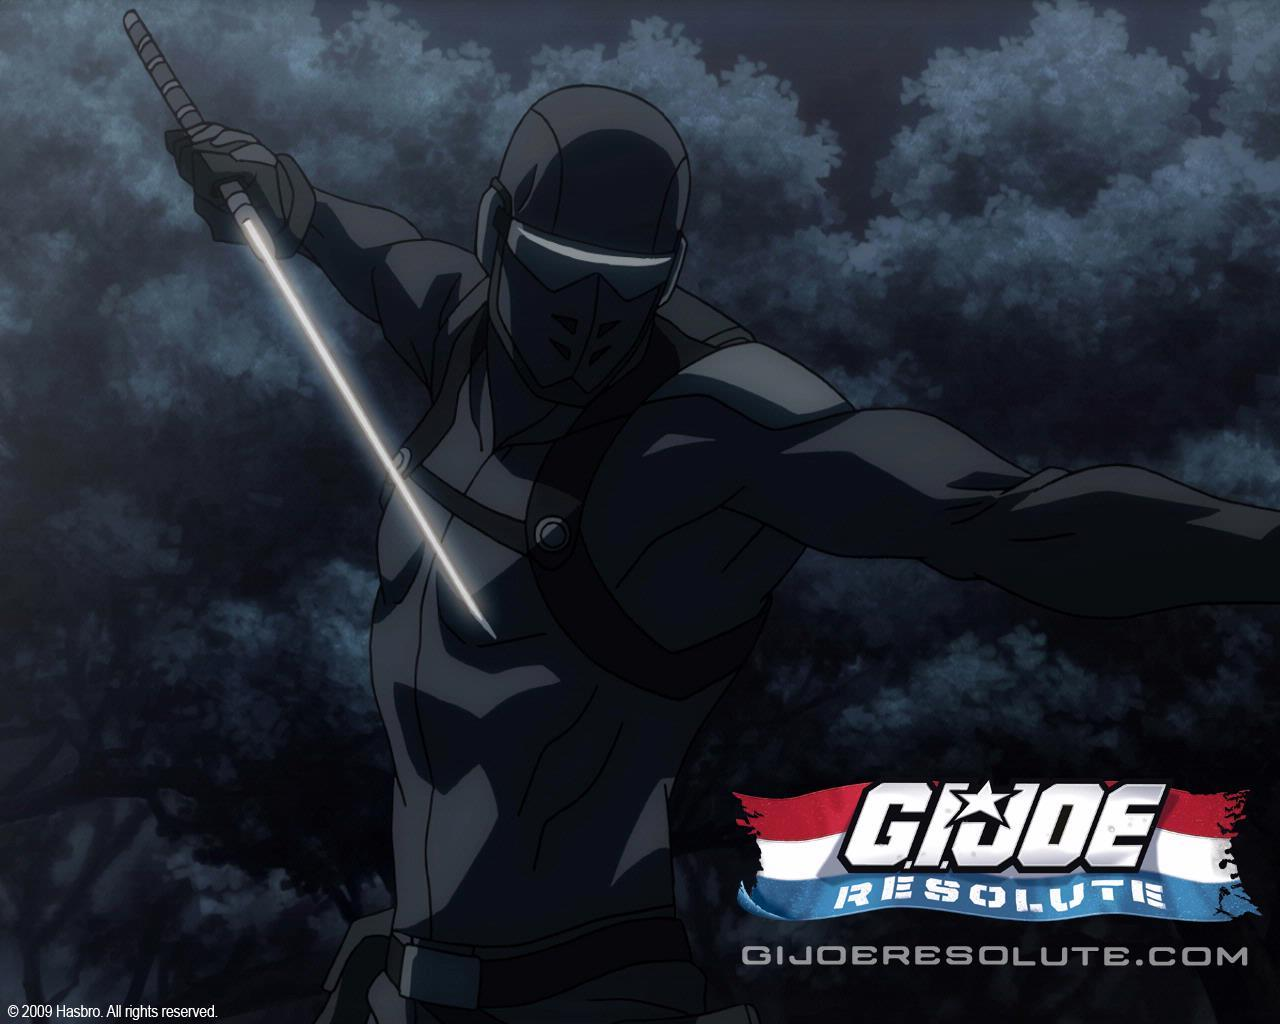 G.I Joe Resolute Widescreen